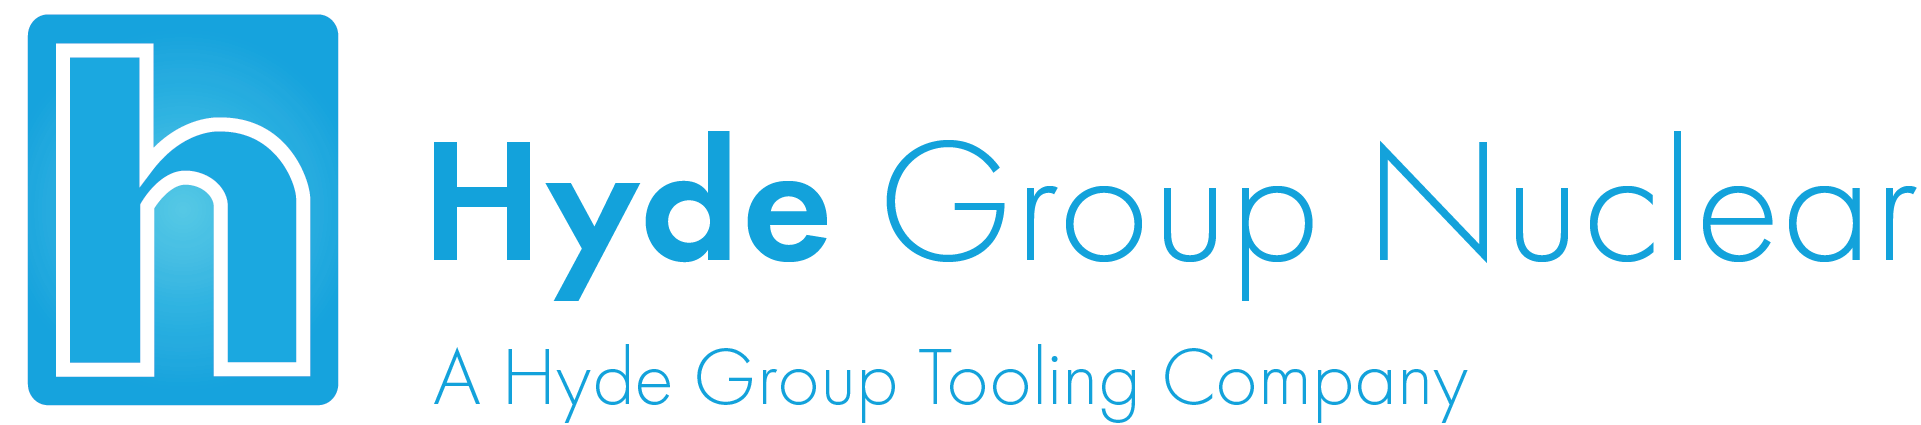 Hyde Group Nuclear Logo.png